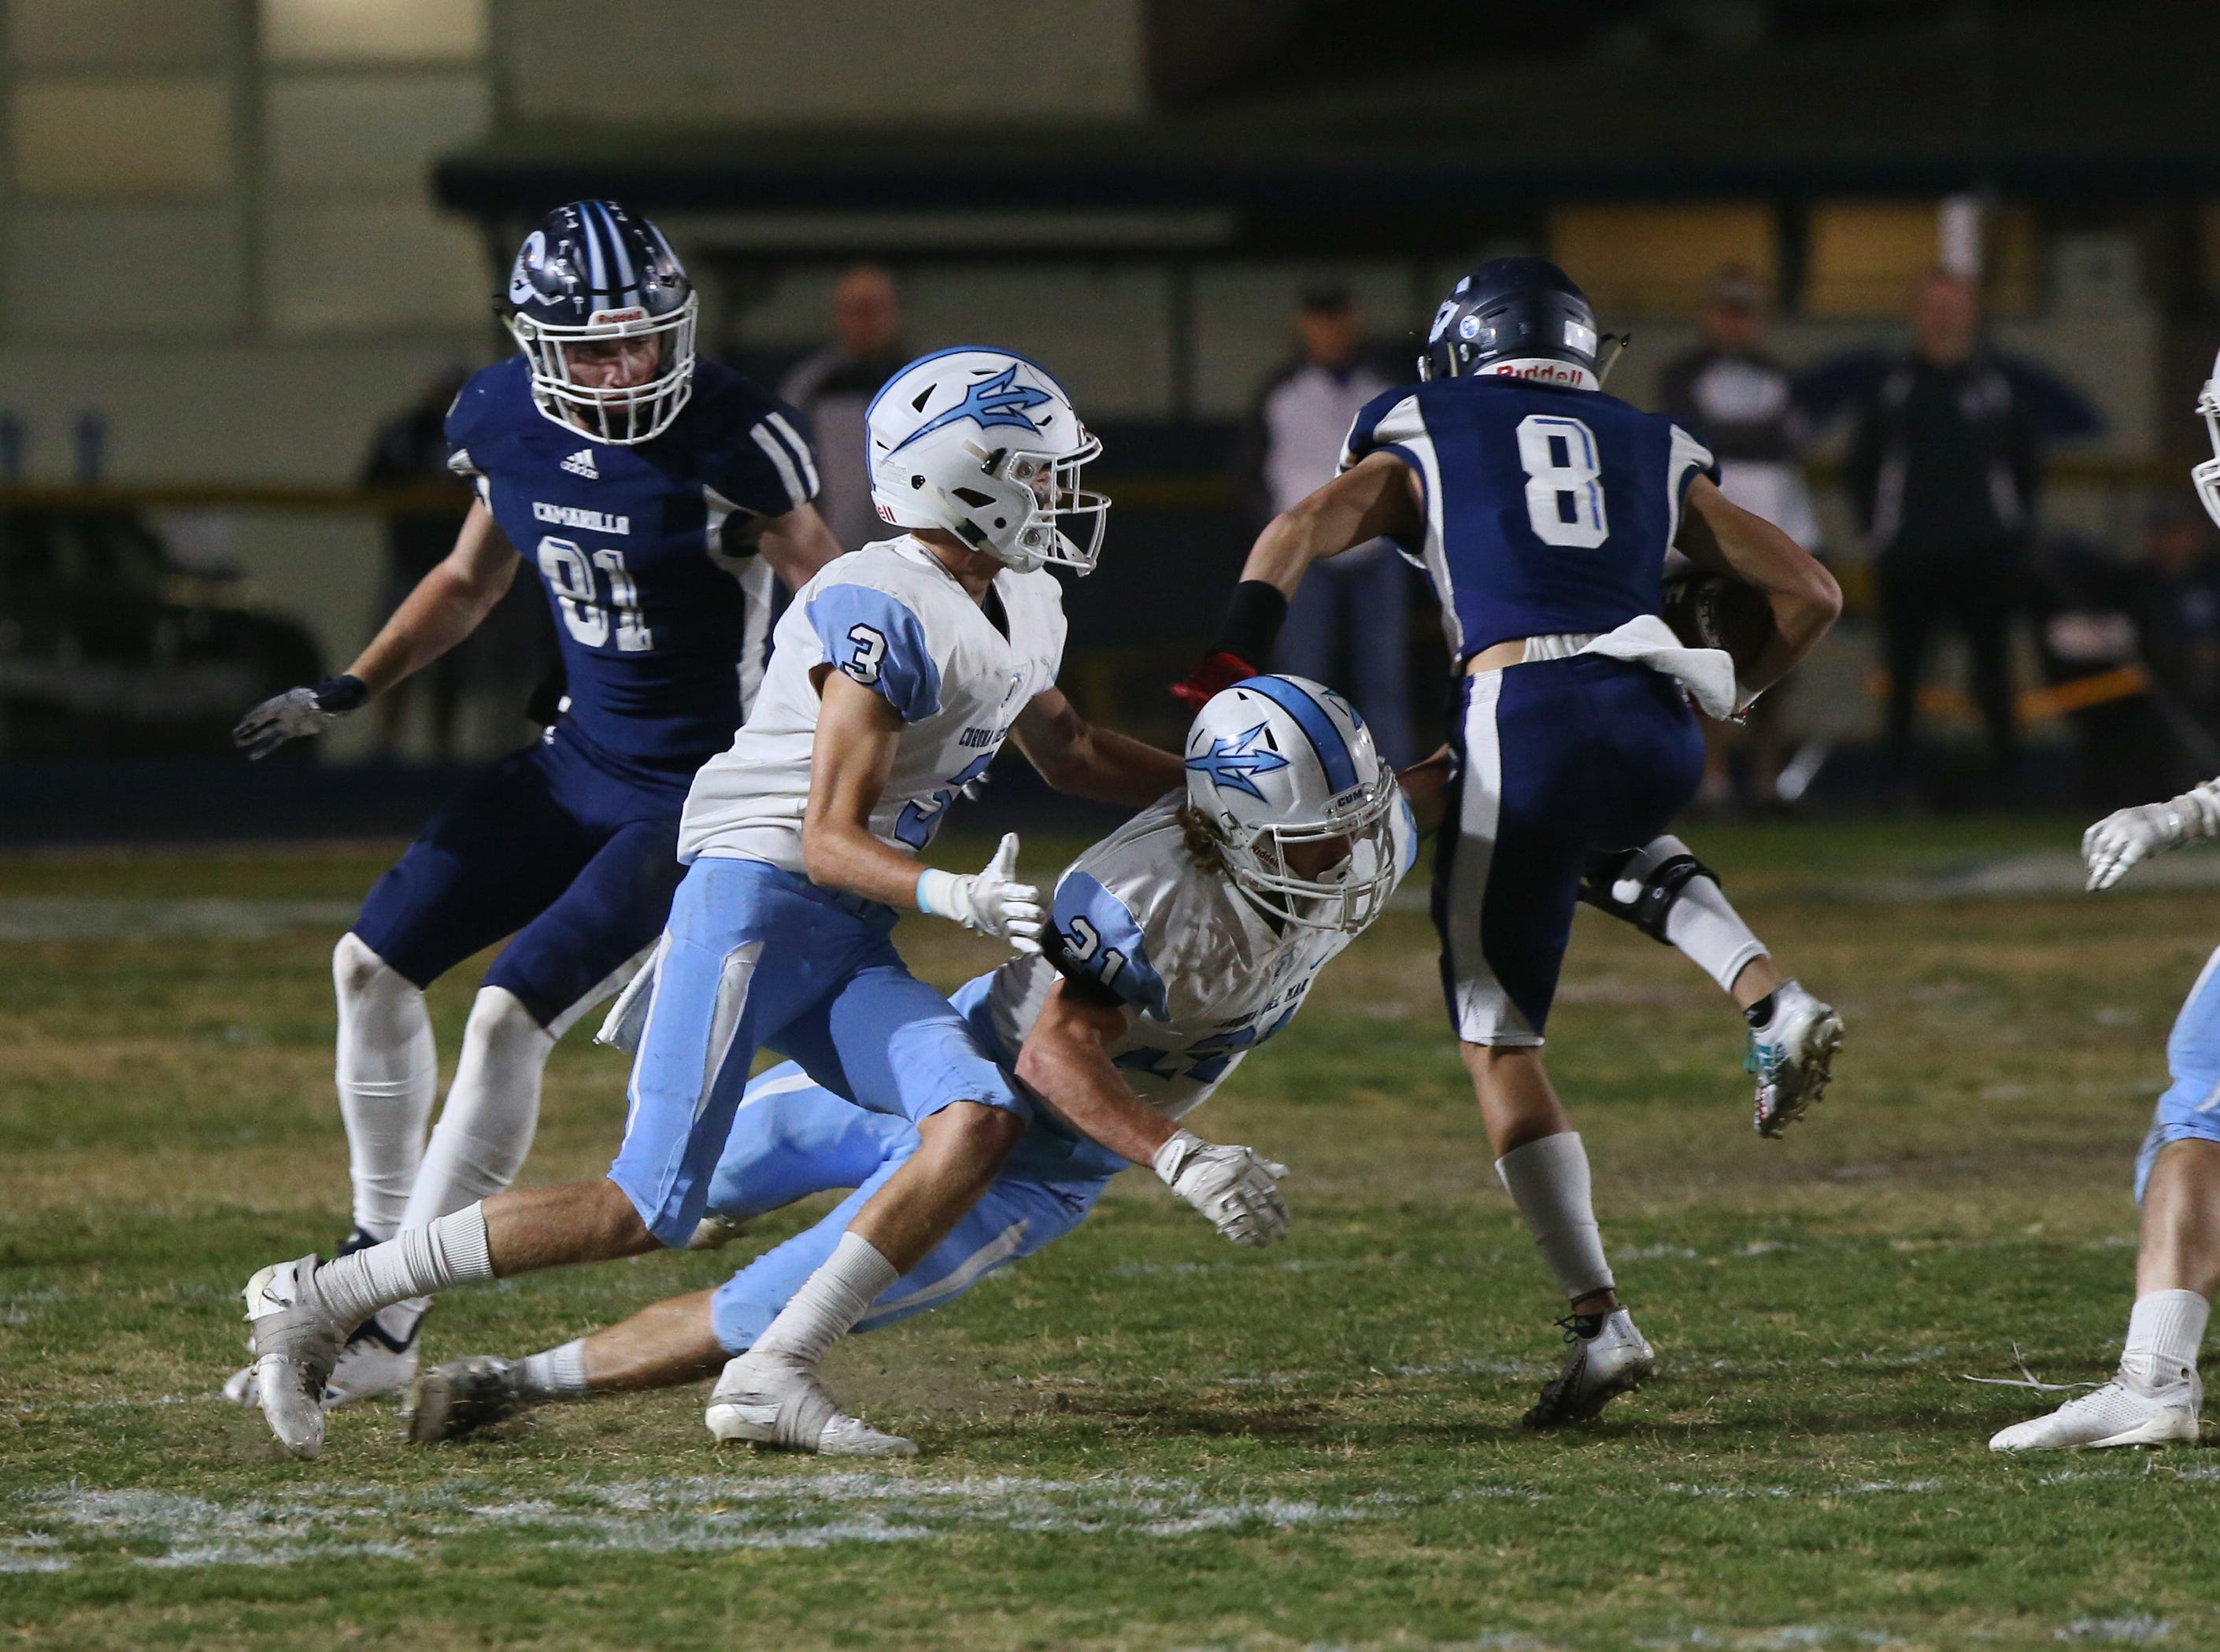 Corona del Mar's Franz Froehlich tackles Camarillo's Mason Brown during their CIF-SS Division 4 semifinal game on Friday night.